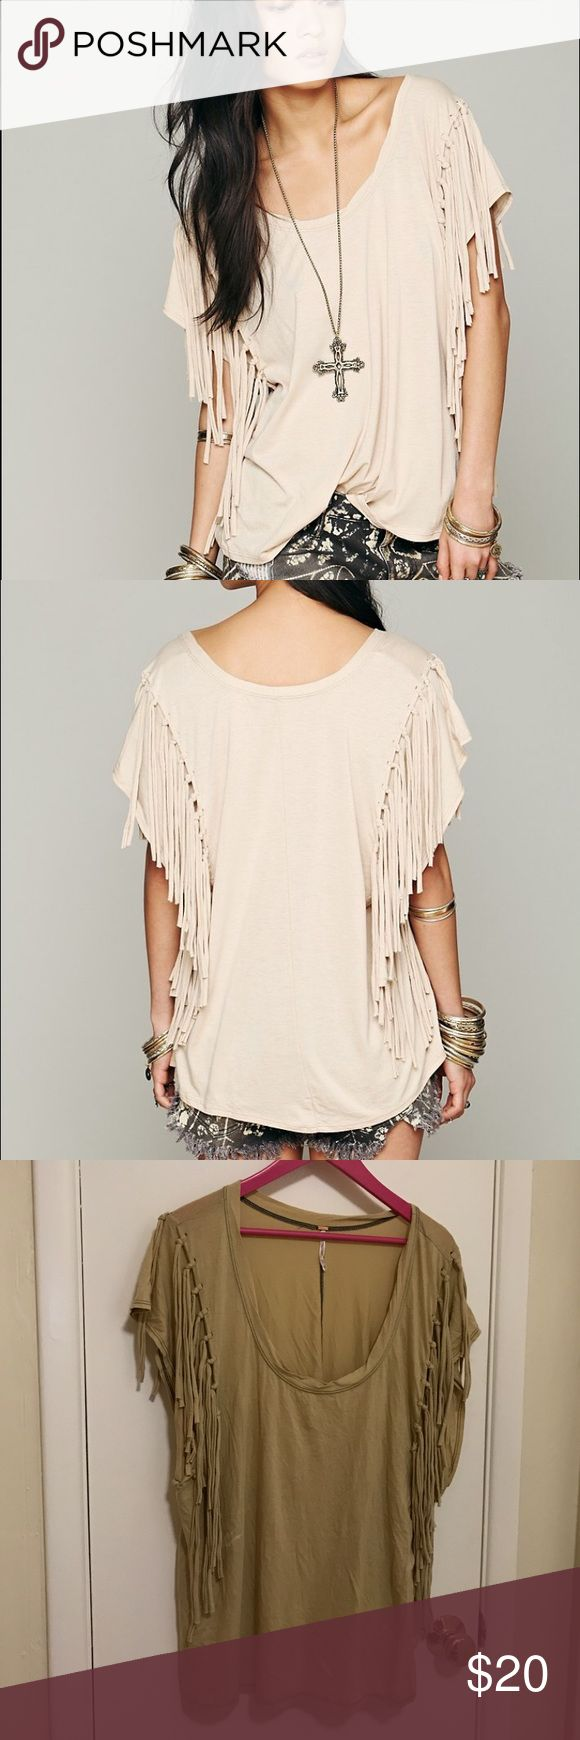 Free people tan fantasy fringe tee size large Super soft fantasy fringe free people tee shirt. Color is a nice tan, or sand color. Not as cream as brand stock picture shows. One small bleach stain on front, otherwise in good condition. See picture for details. Fringe mostly hides stain when worn. Size large. Fits like an oversized tee shirt. Perfect with jeans and booties. Cotton material. Free People Tops Tees - Short Sleeve